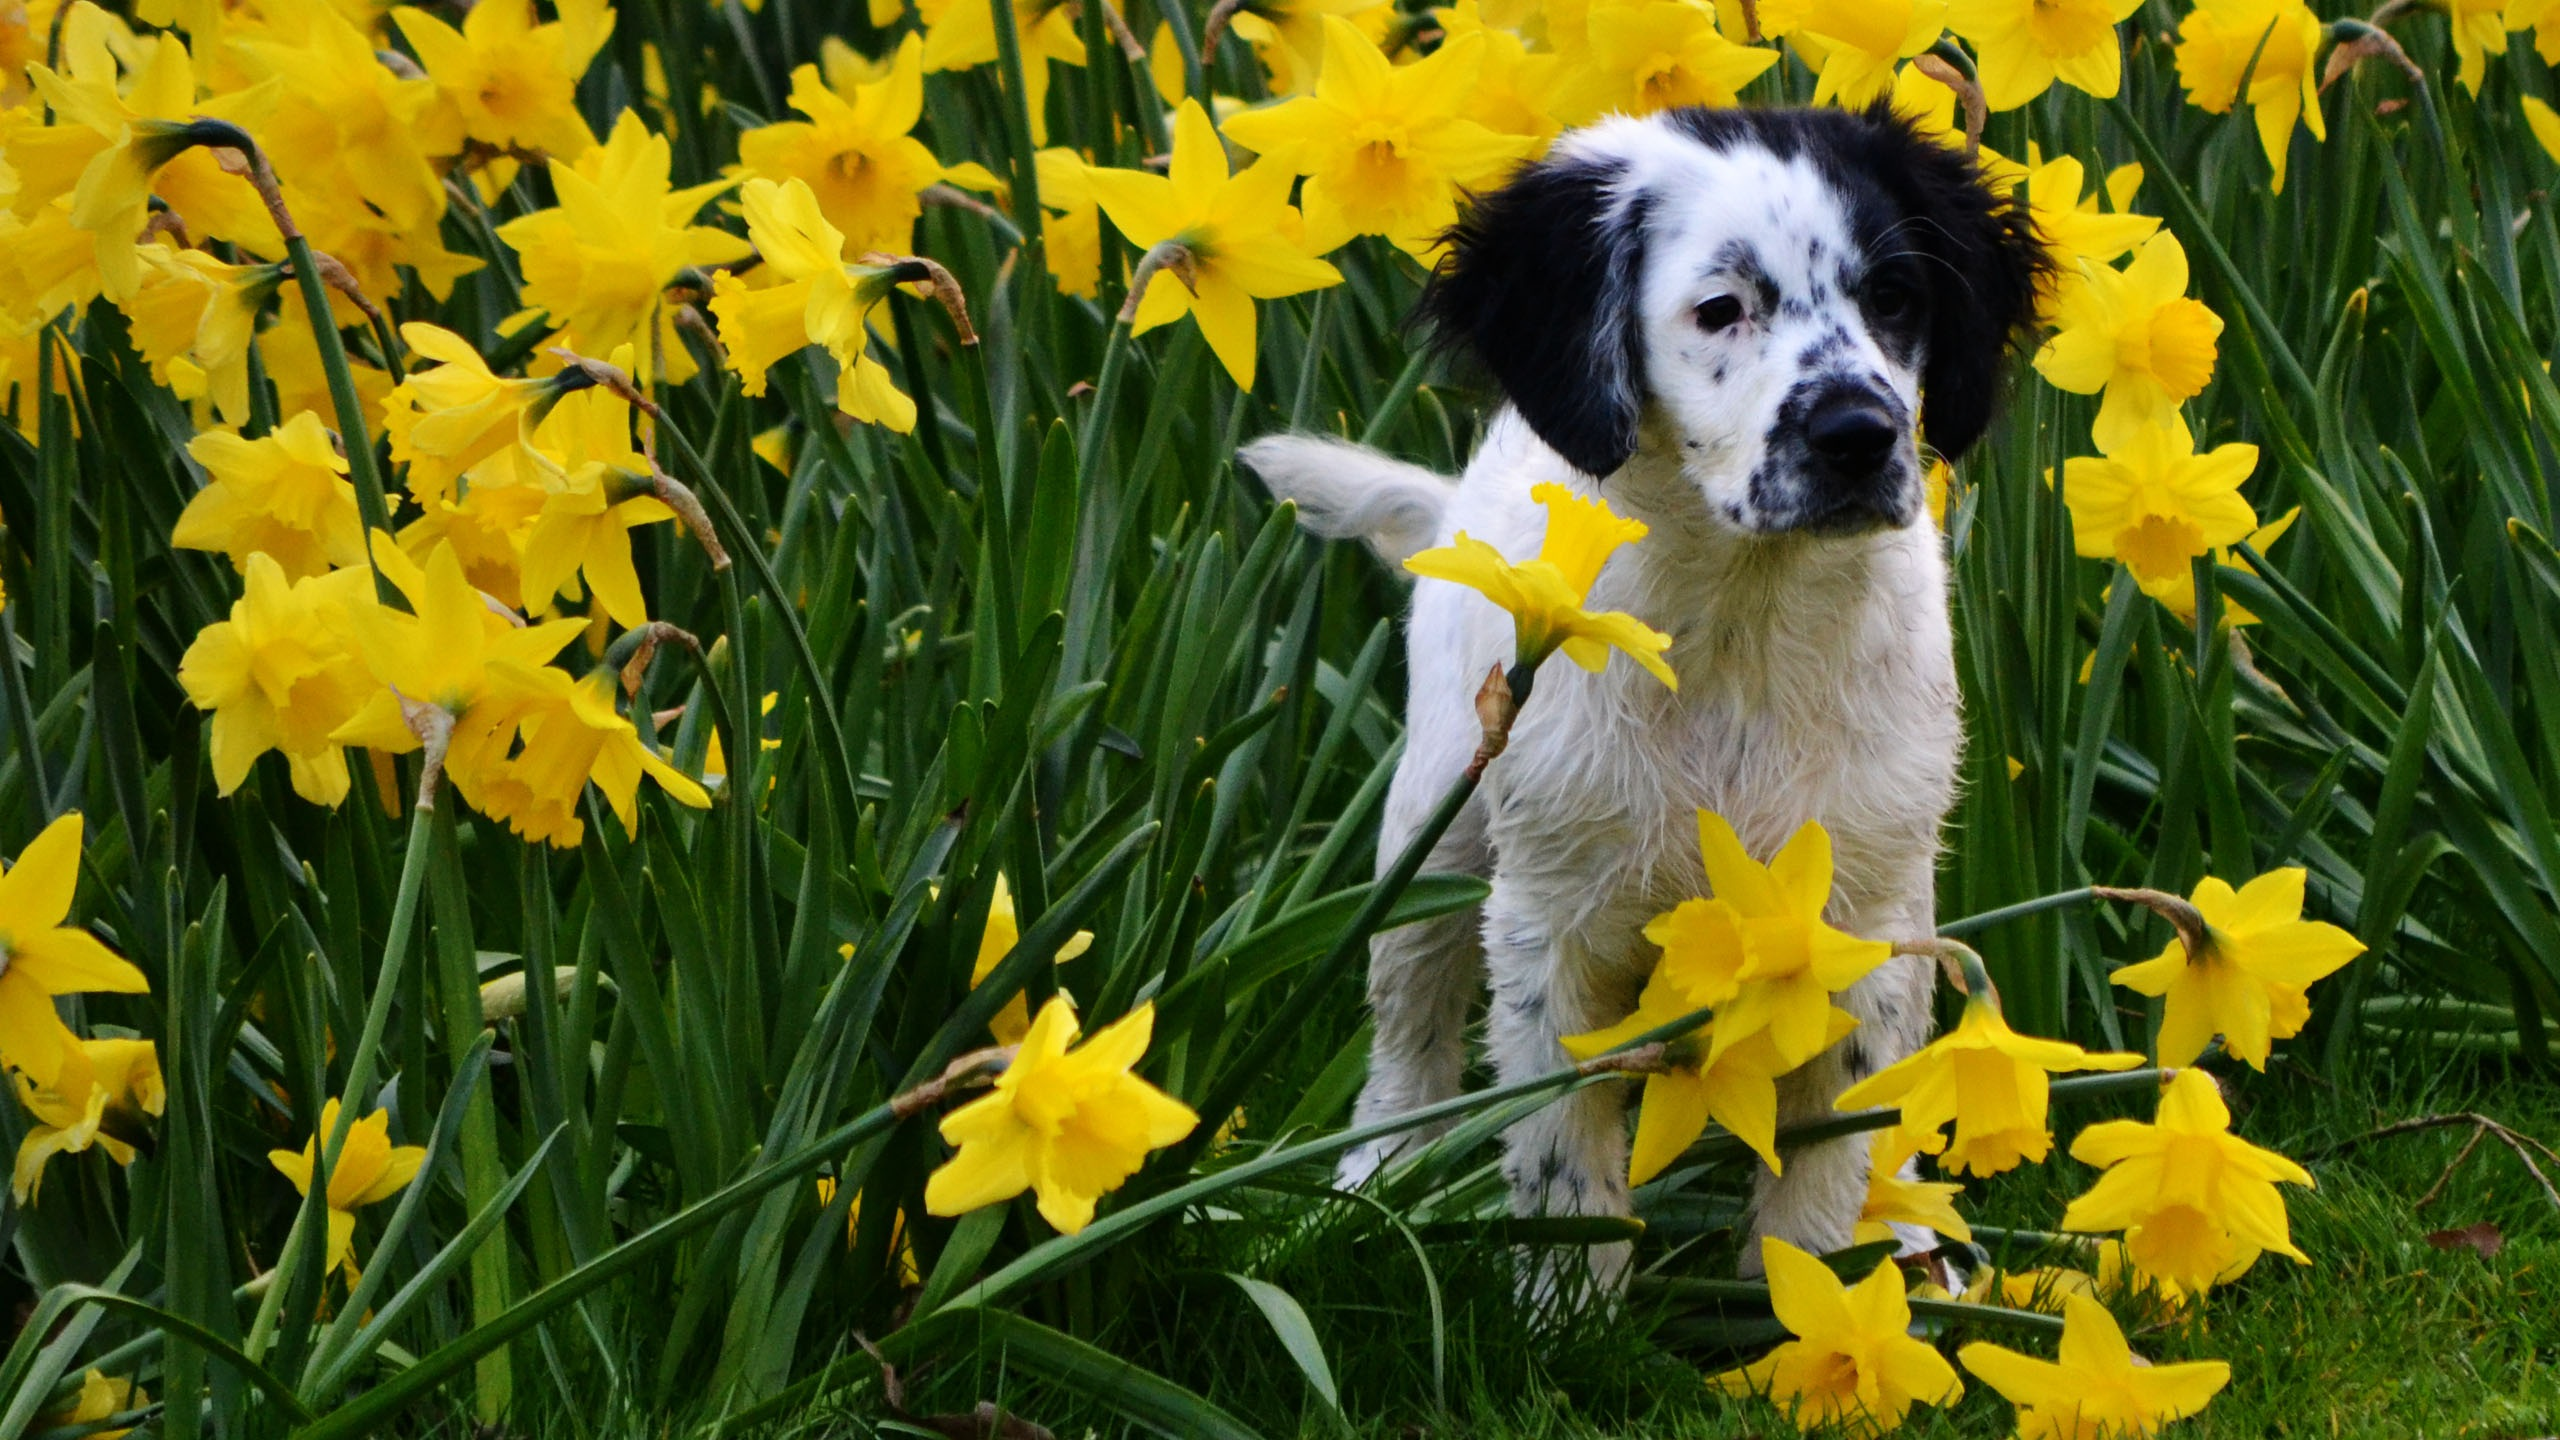 Dog with daffodil flowers